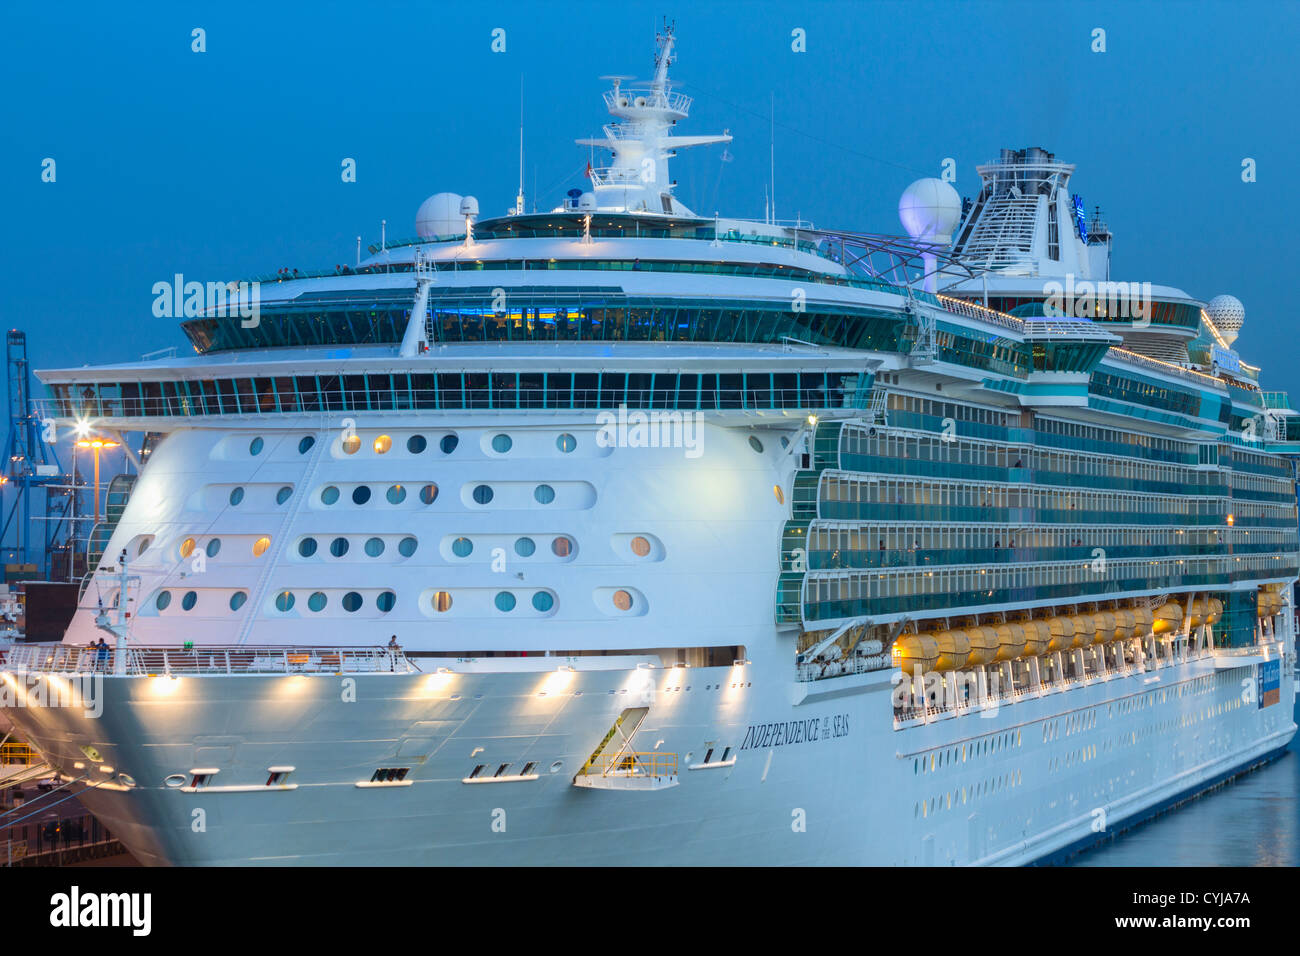 Independence of the Seas cruise ship in Las Palmas port on Gran Canaria at dusk. - Stock Image